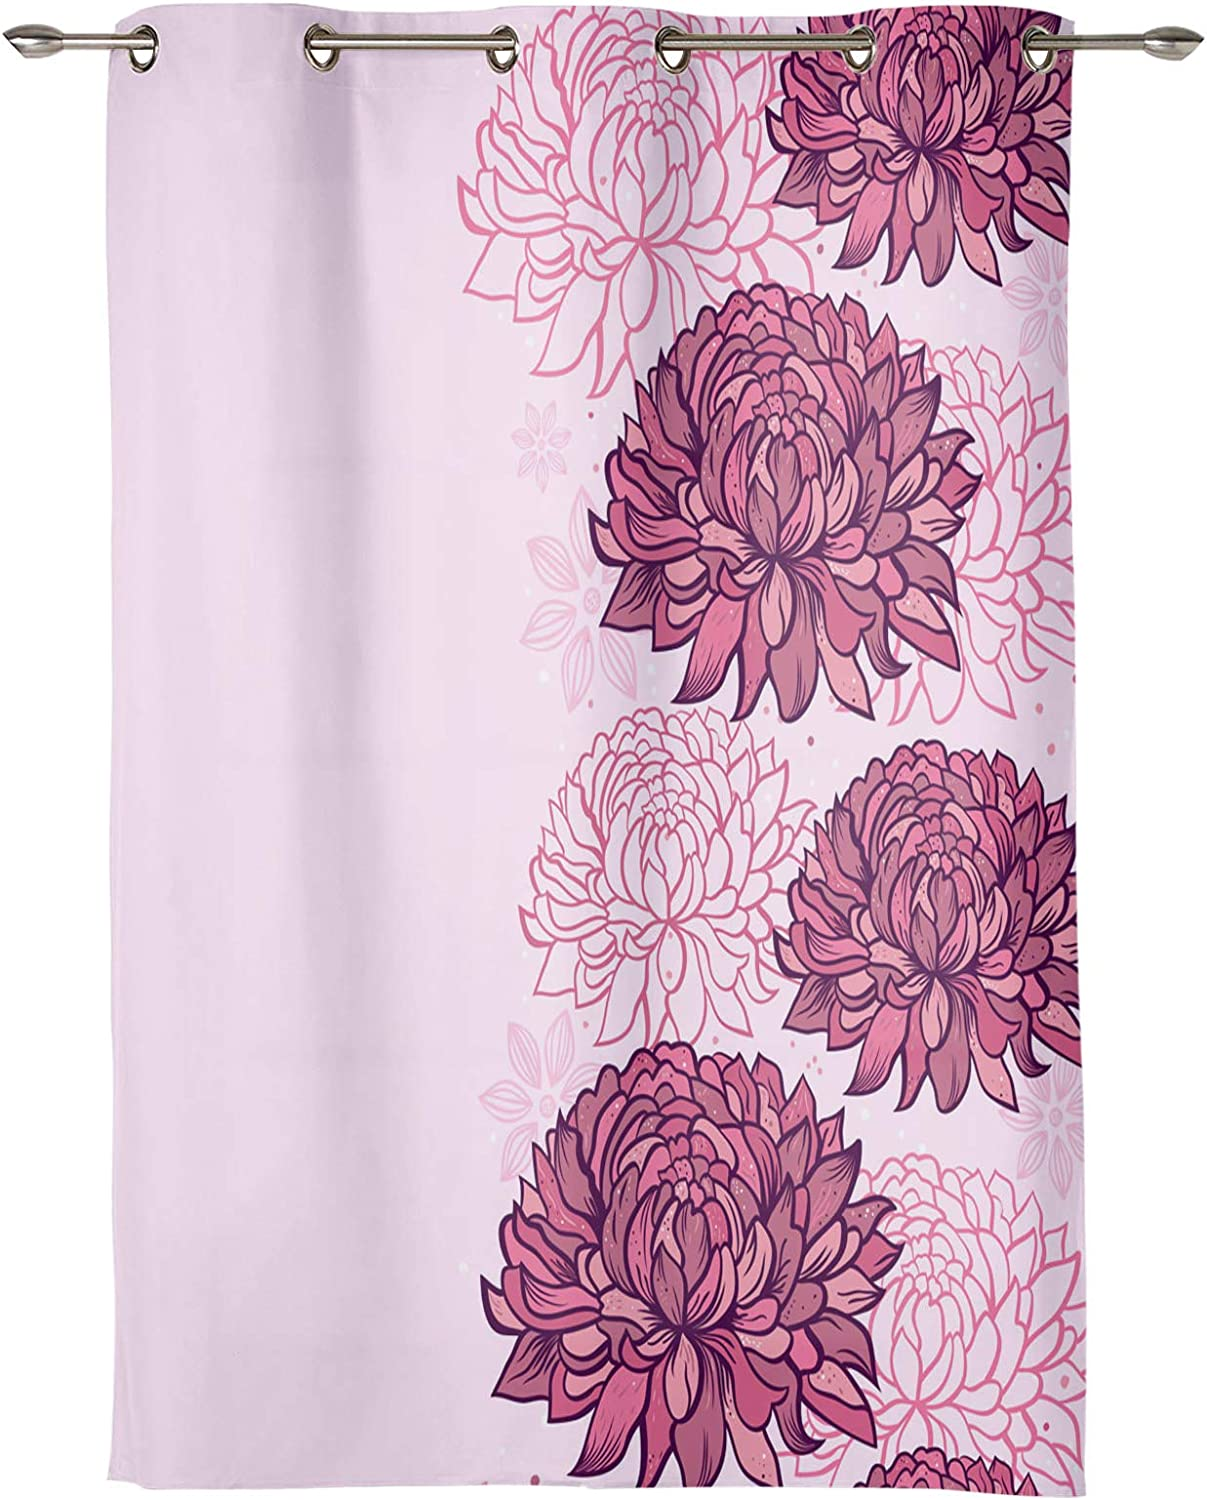 Arts New Shipping Free Shipping Language Windows Treatment Grommet Curtains New Shipping Free Drapes Blackout